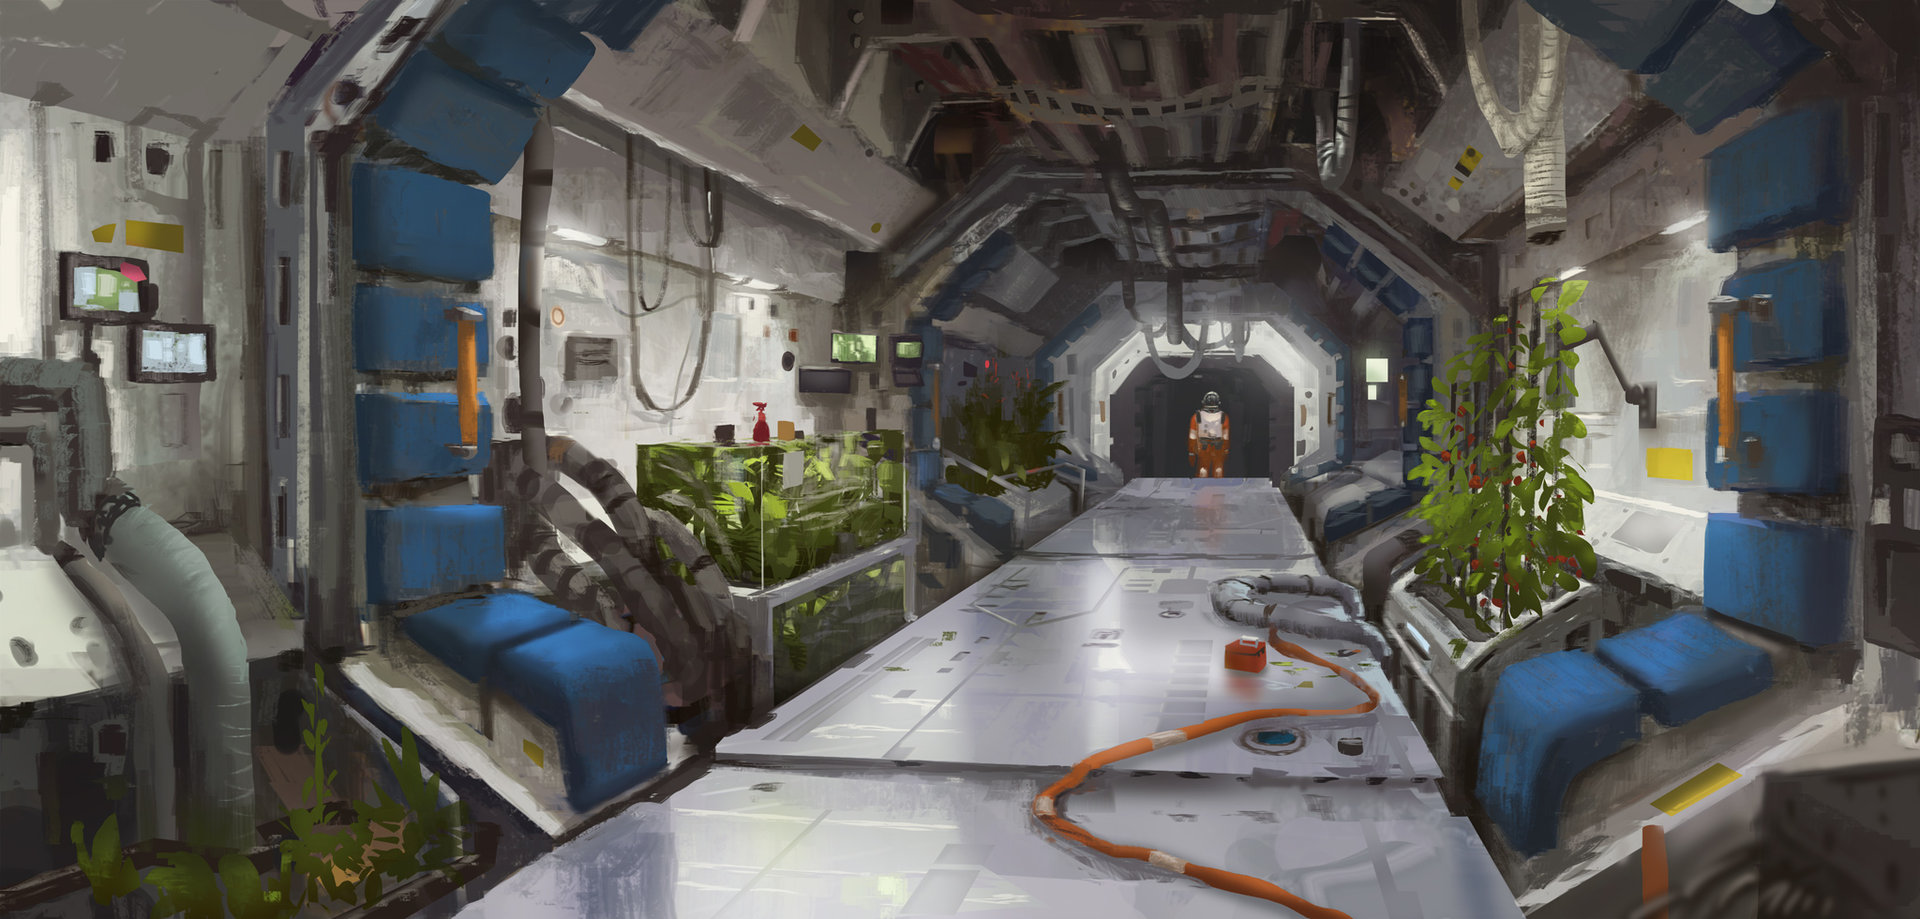 Adrien girod space station corridor 01